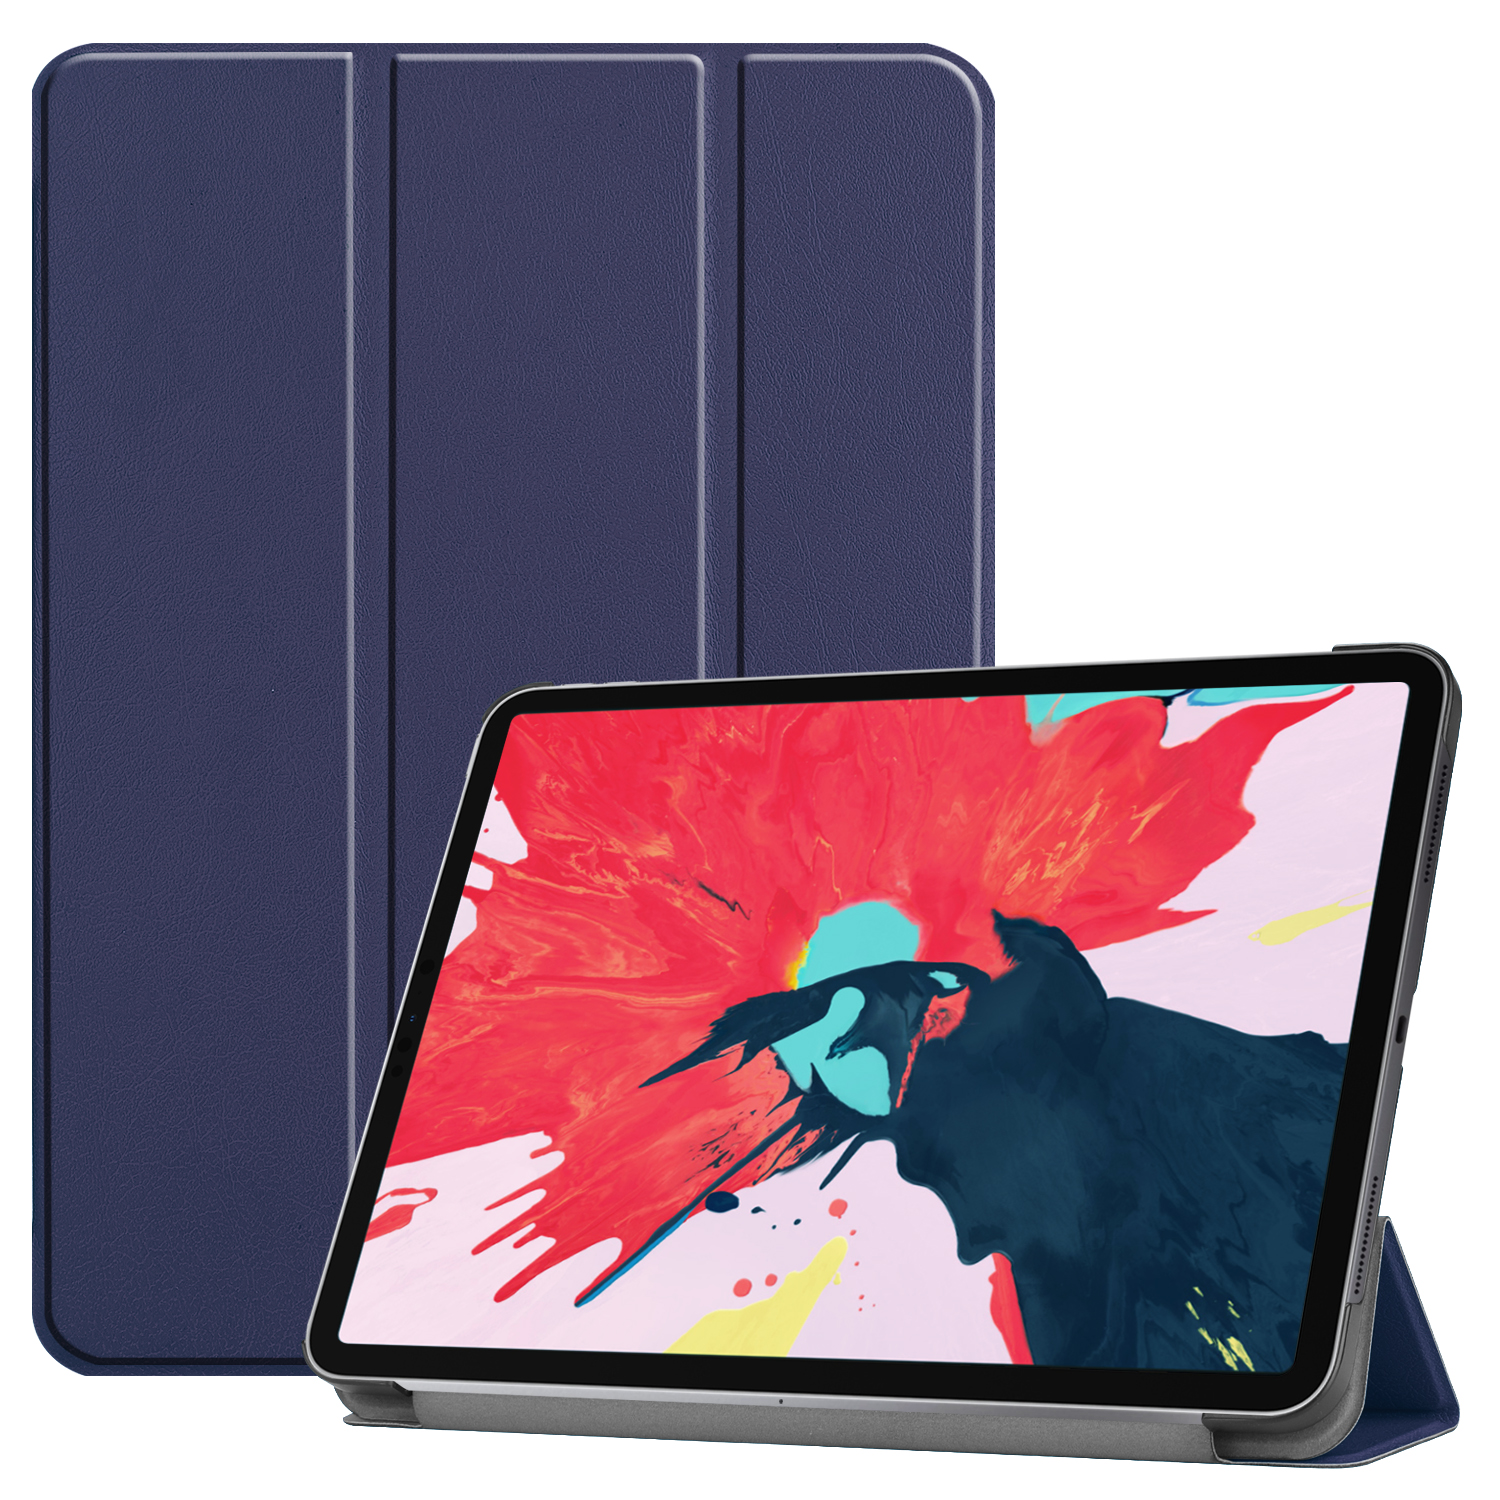 Tablet PC Protective Case Ultra-thin Smart Cover for iPad pro 11(2020) blue